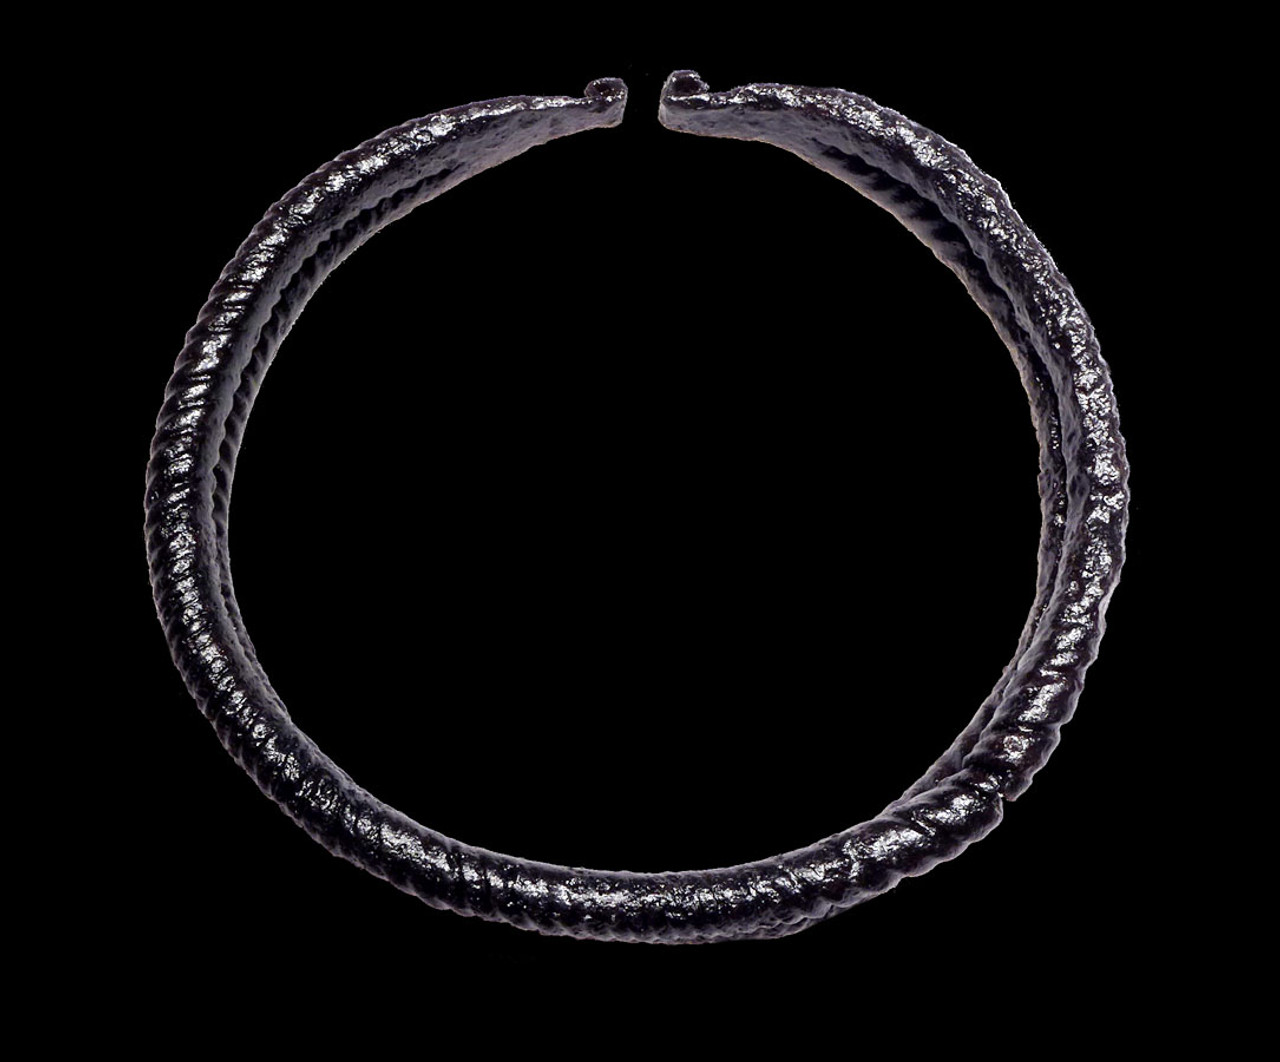 MUSEUM-CLASS ANCIENT CELTIC IRON TORC NECK RING FROM A CELT OF HIGH STATUS *CEL001